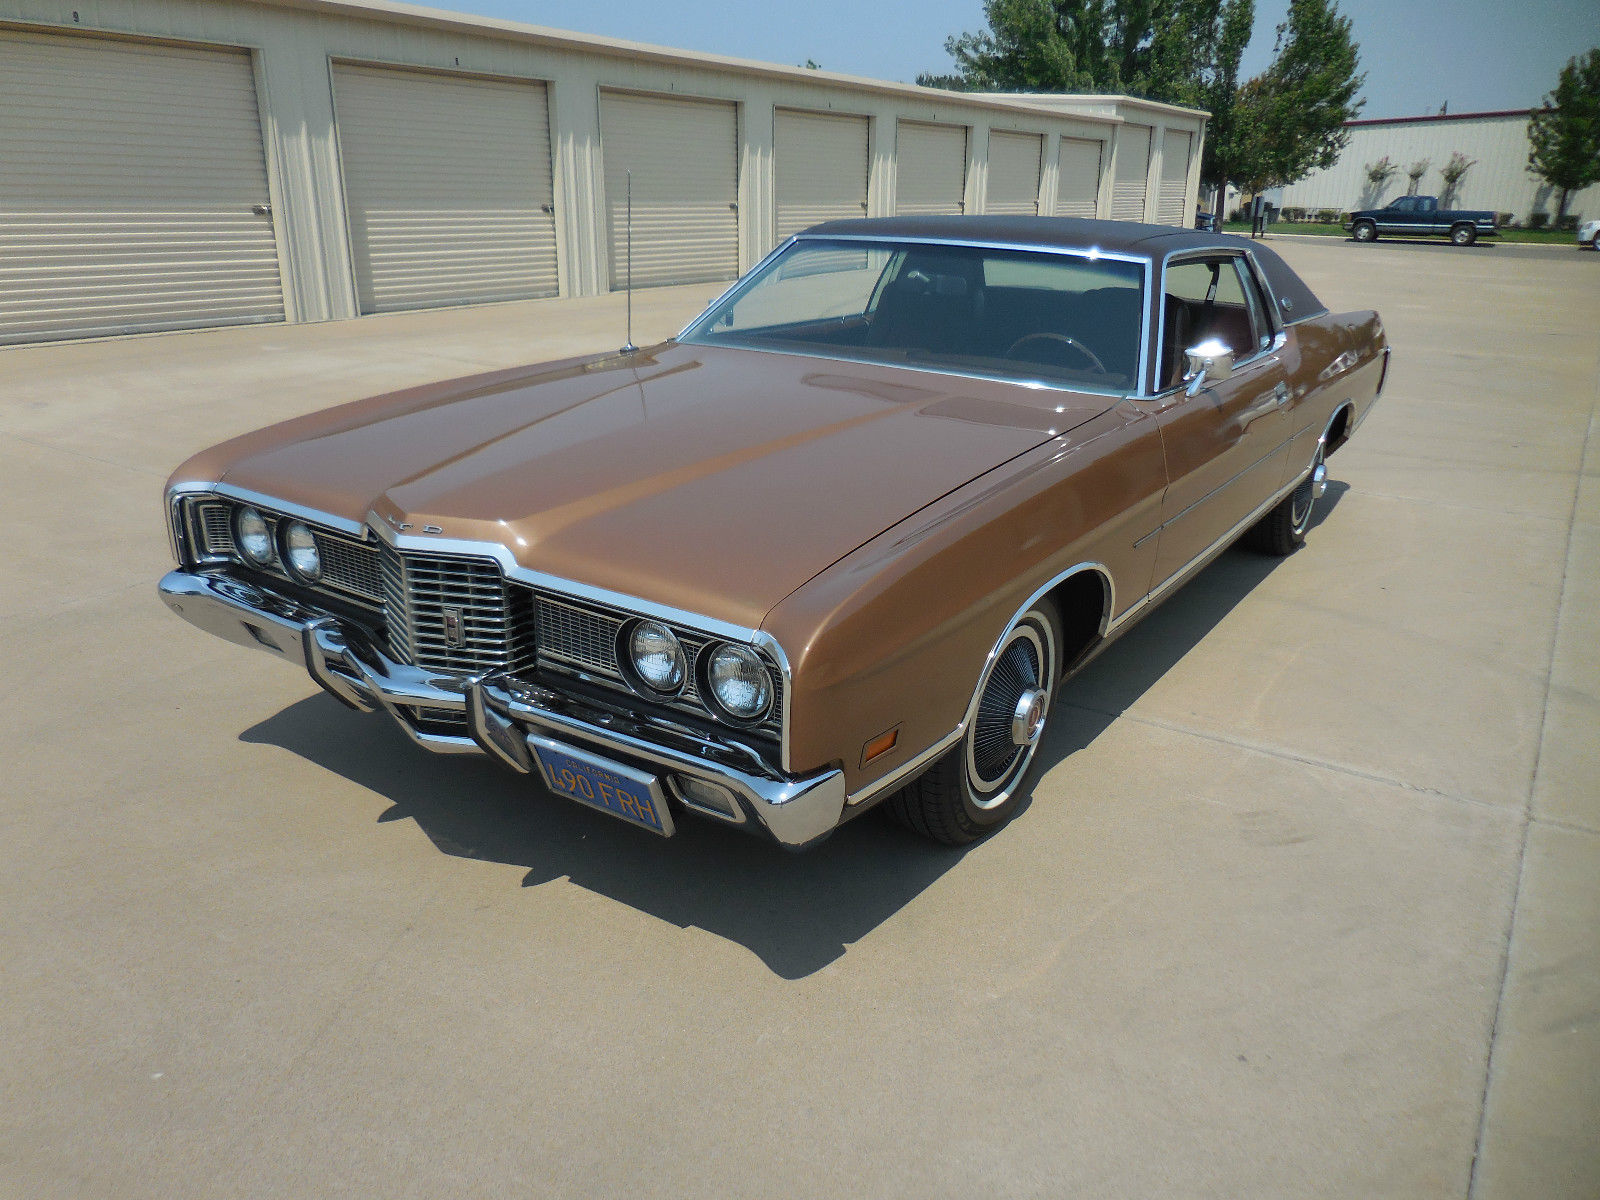 hight resolution of ebay find this 1972 ford ltd is pure seventies perfection